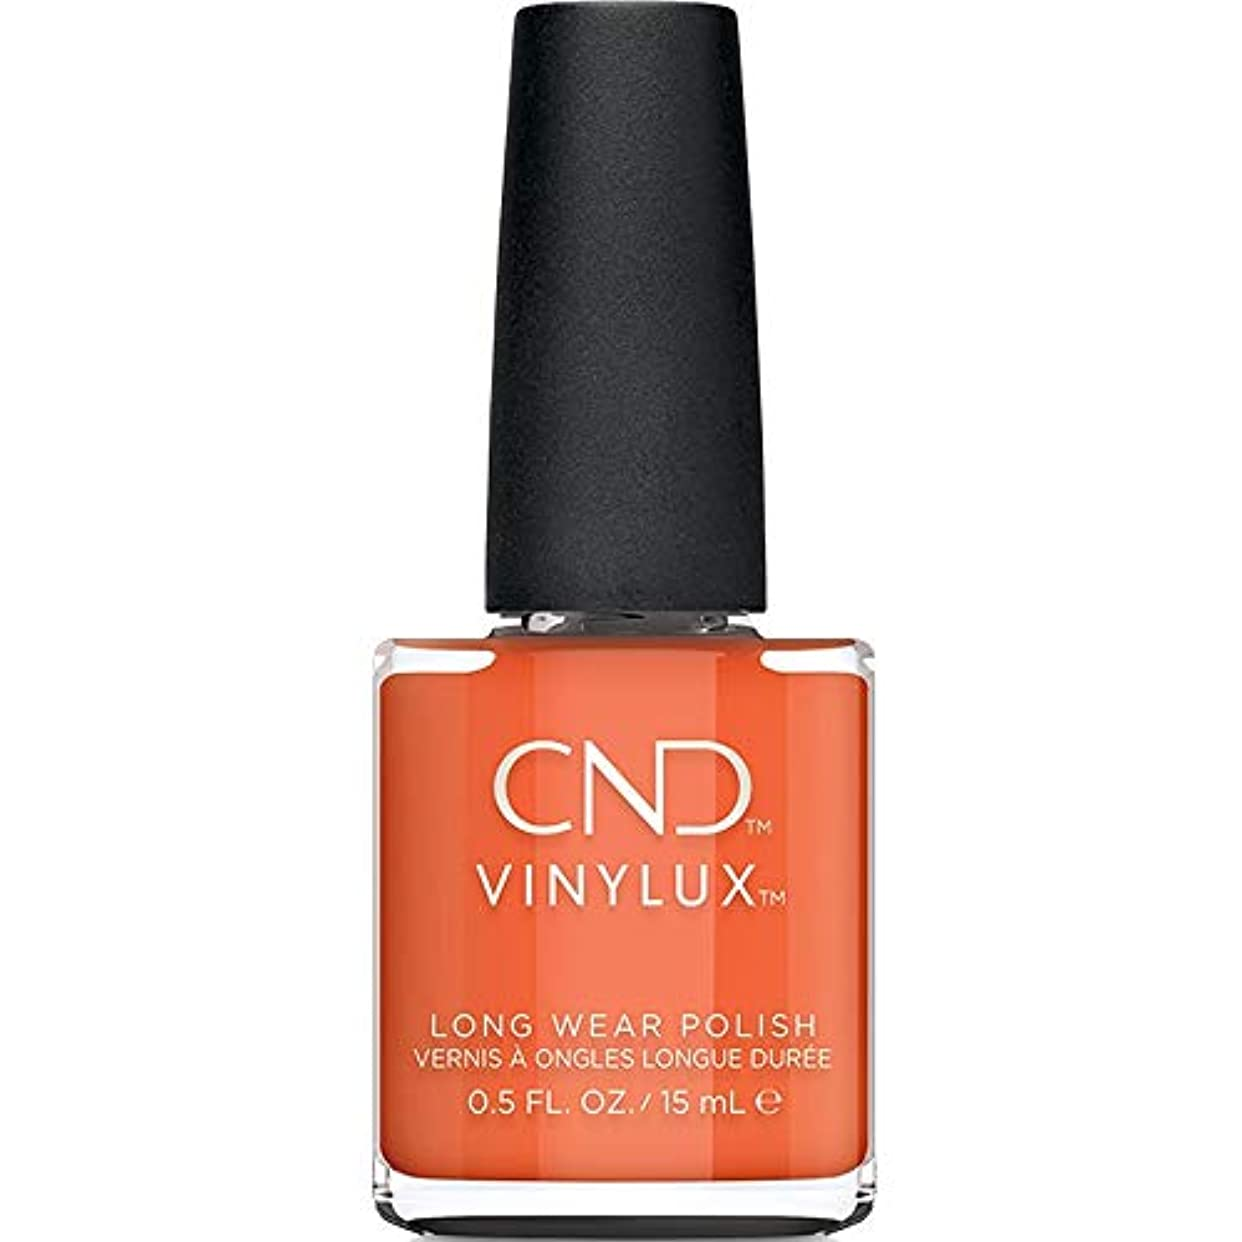 CND Vinylux - Treasured Moments Fall 2019 Collection - B-day Candle - 0.5oz / 15ml